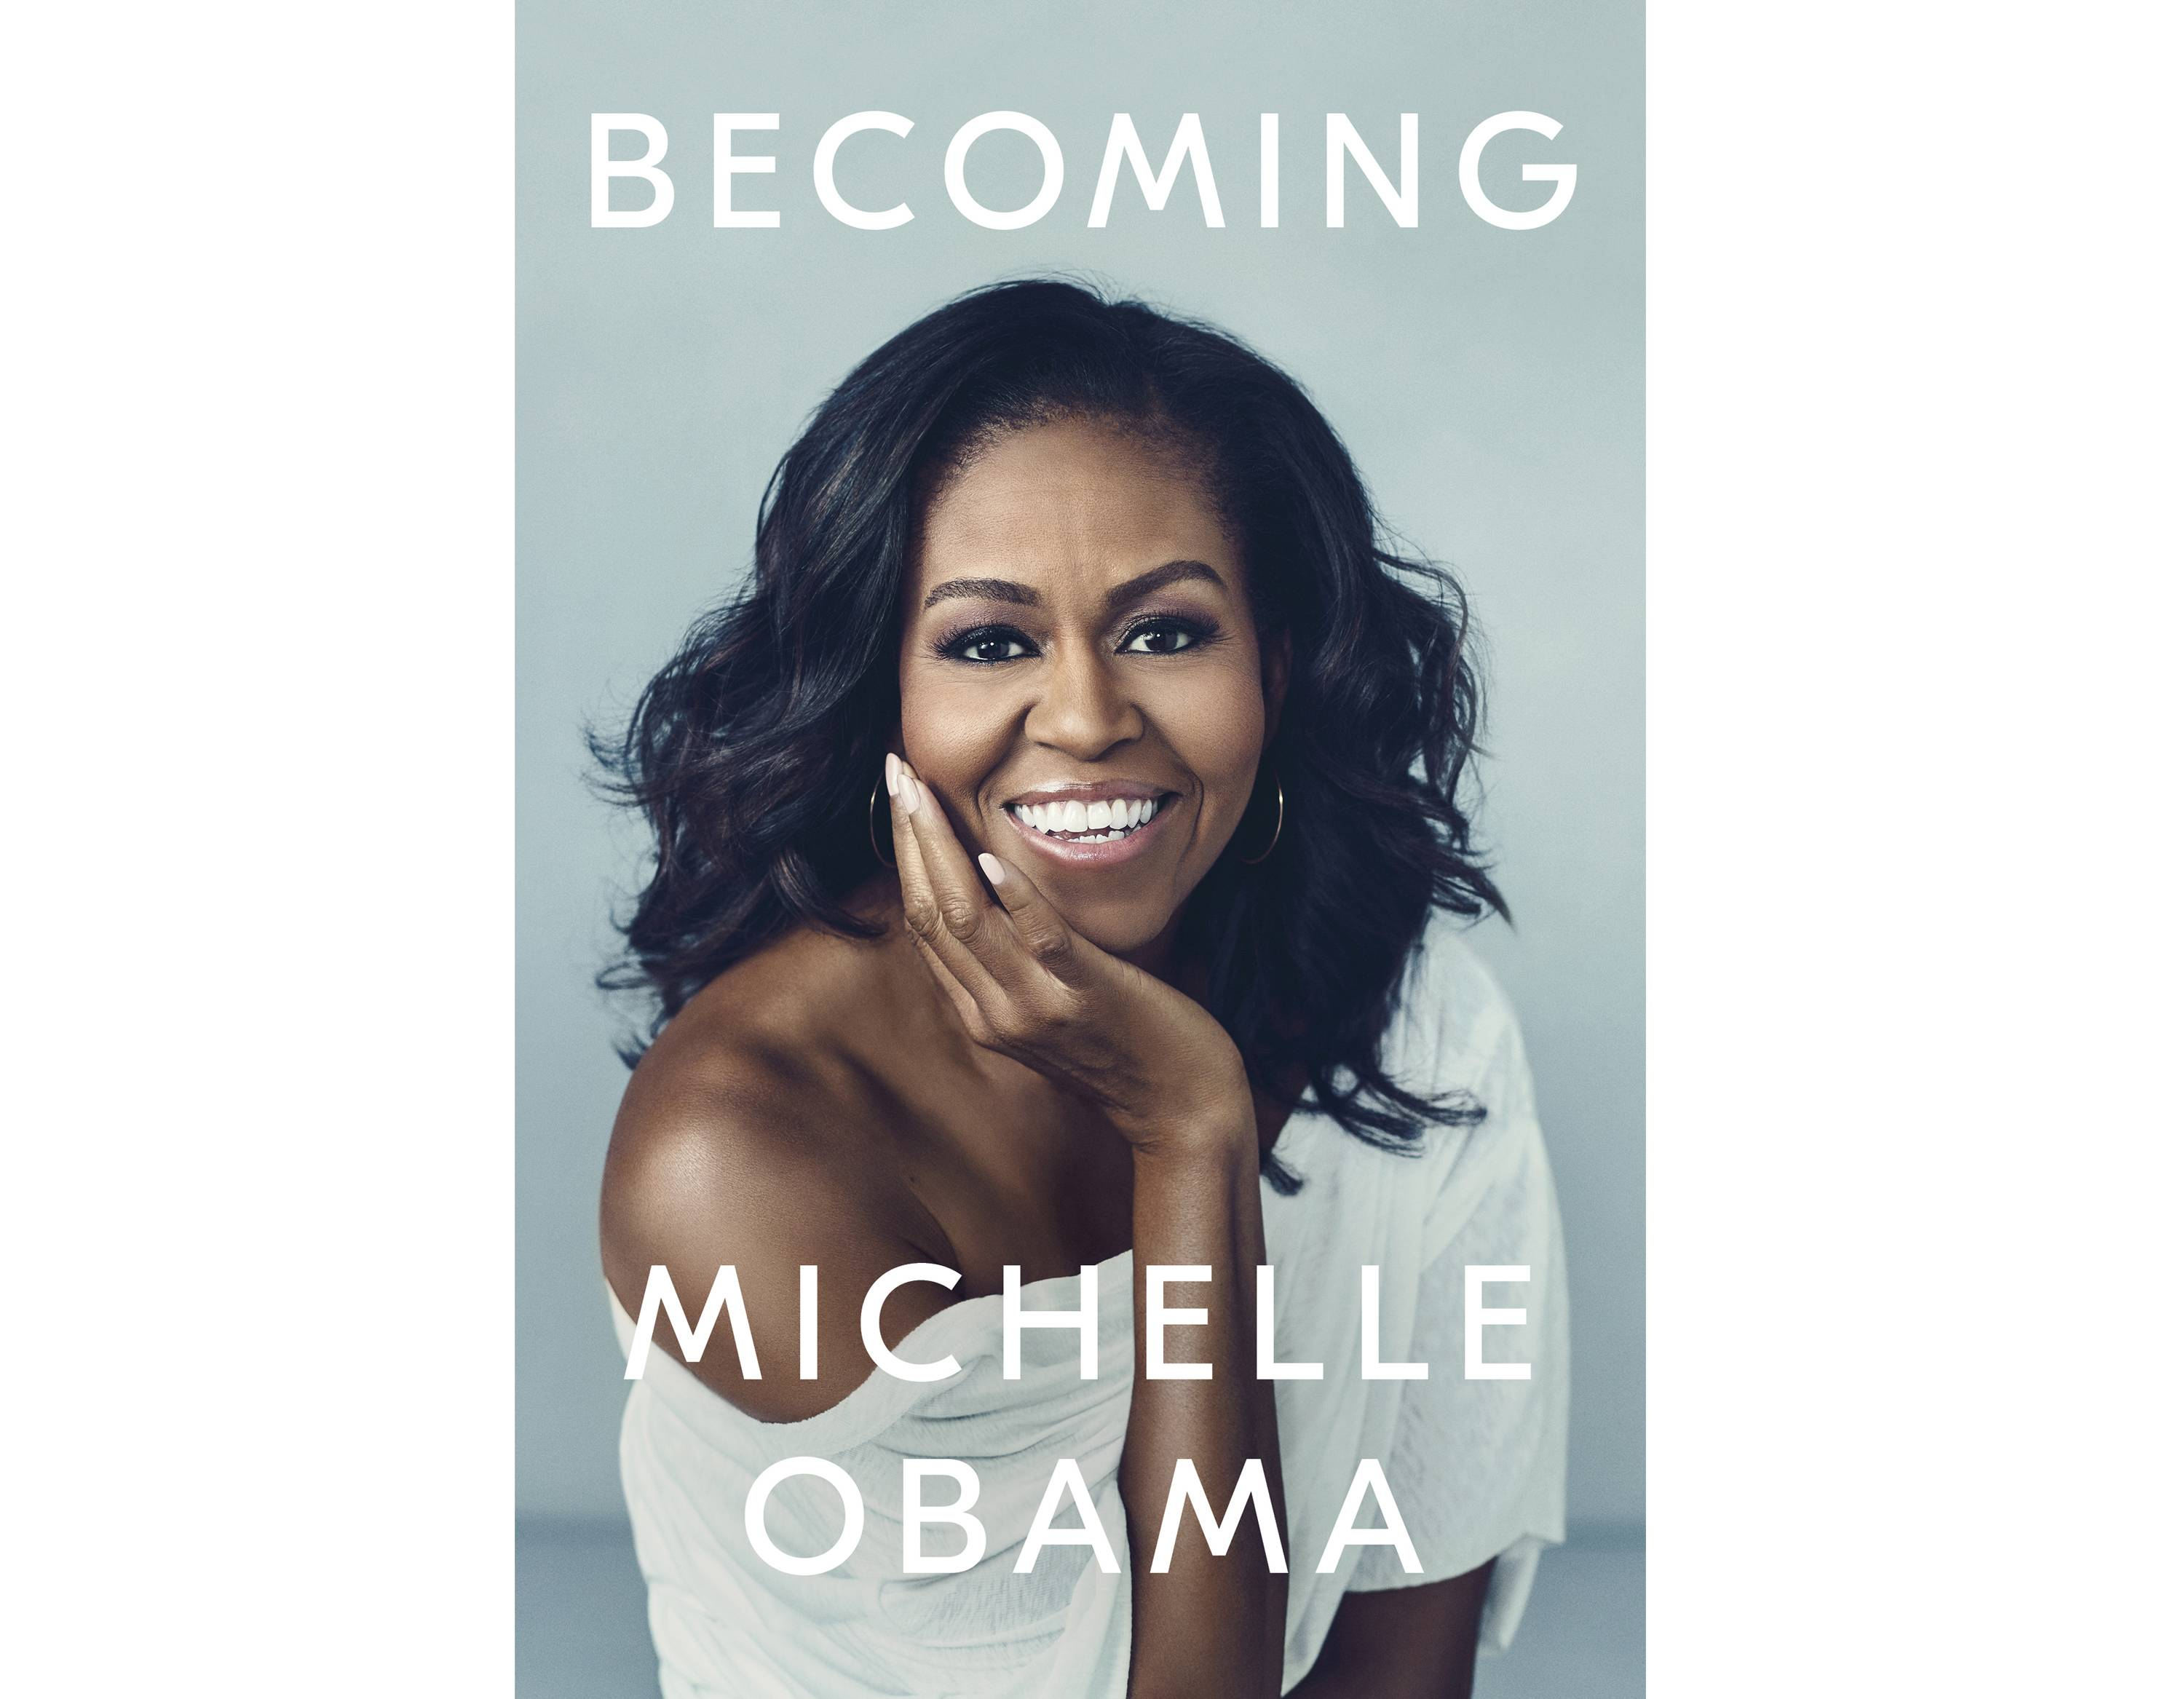 In revealing new memoir, Michelle Obama candidly shares her story